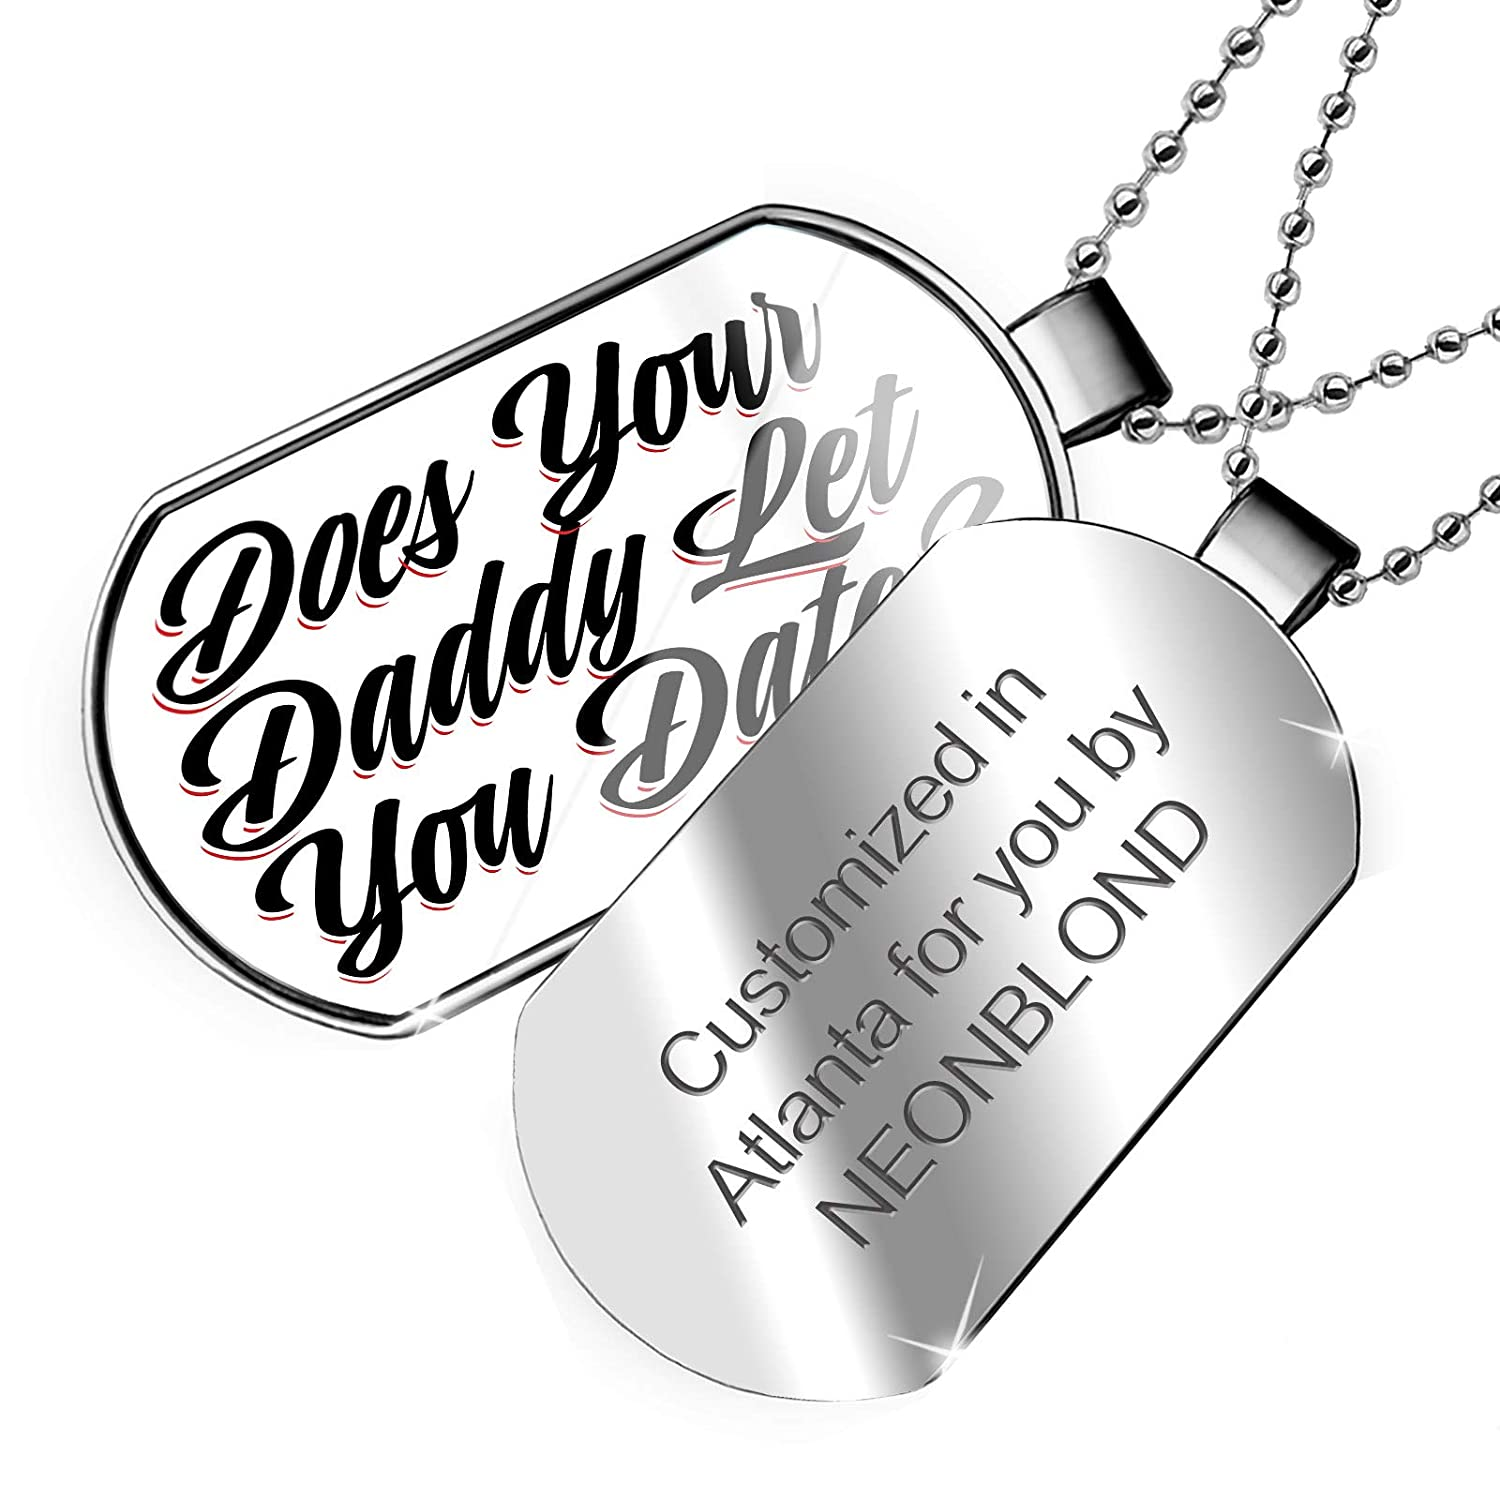 Dogtag Necklace NEONBLOND Personalized Name Engraved Vintage Lettering Does Your Daddy Let You Date